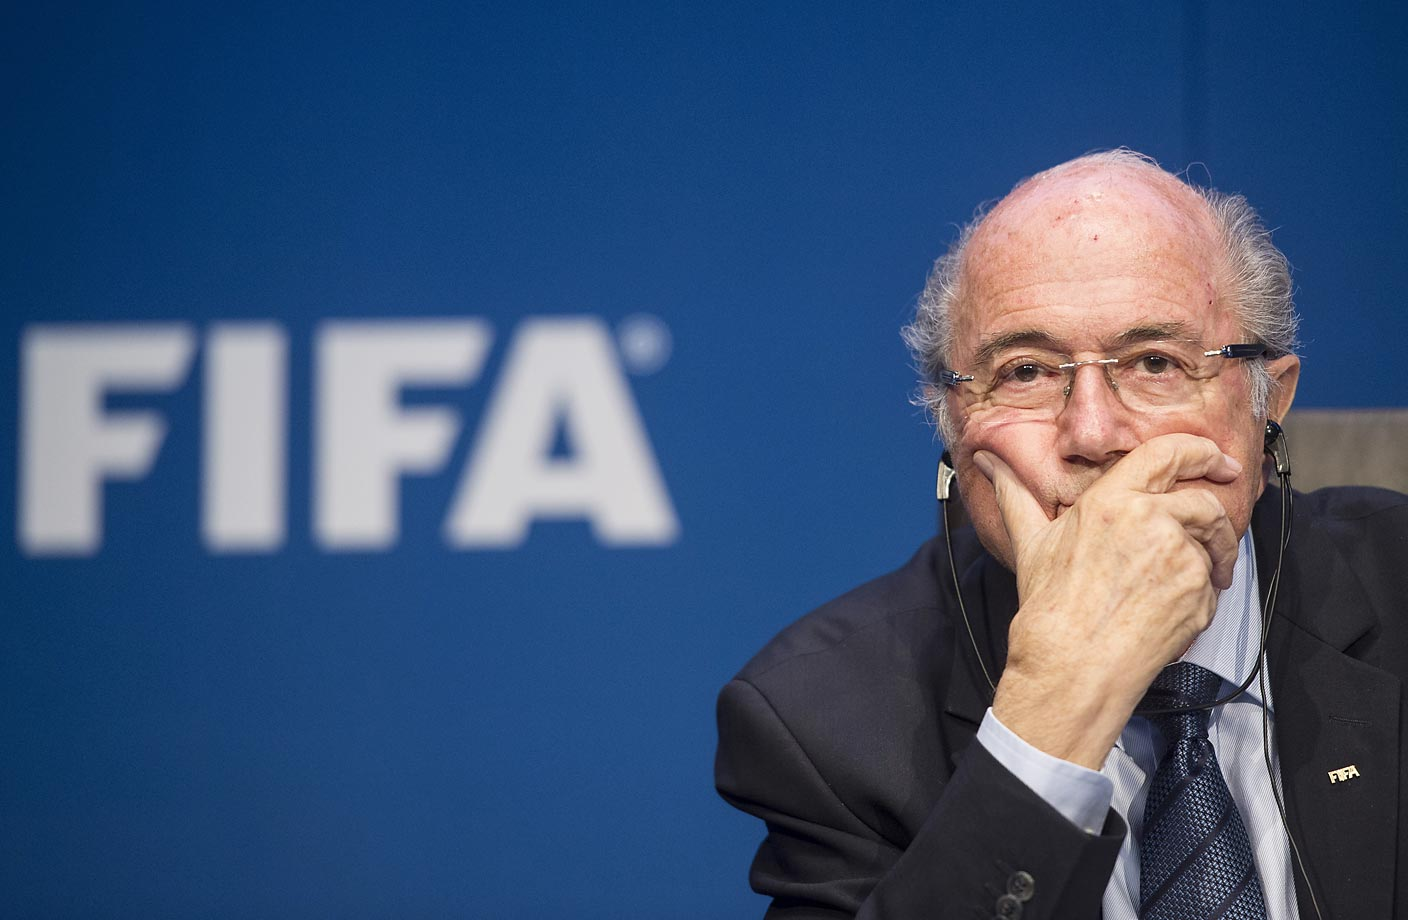 FIFA president Sepp Blatter make the shocking announcement on May 2 that he would resign his position, this after 14 FIFA executives were arrested the week before for their role in a corruption scandal.